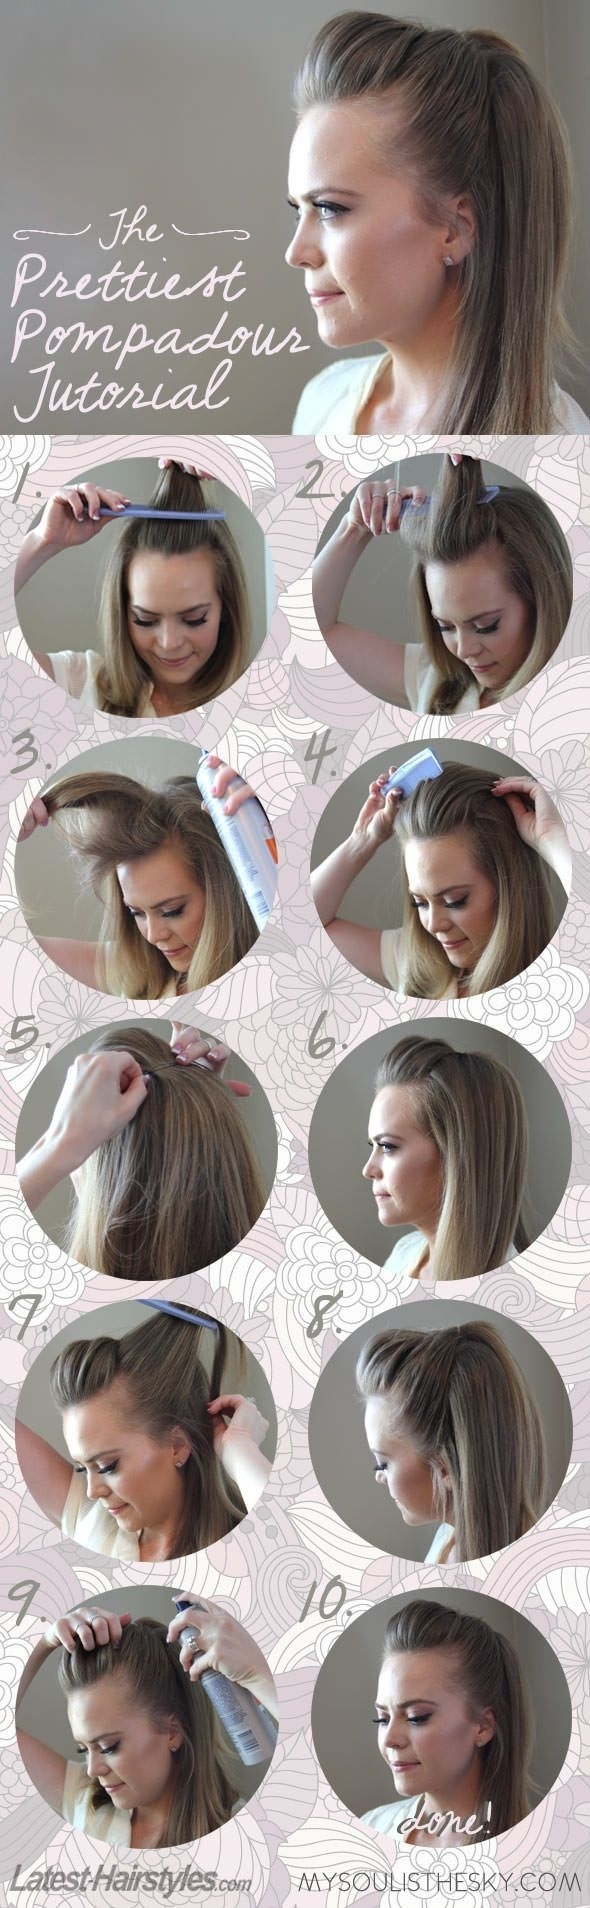 Five-Minute Hairstyle 12